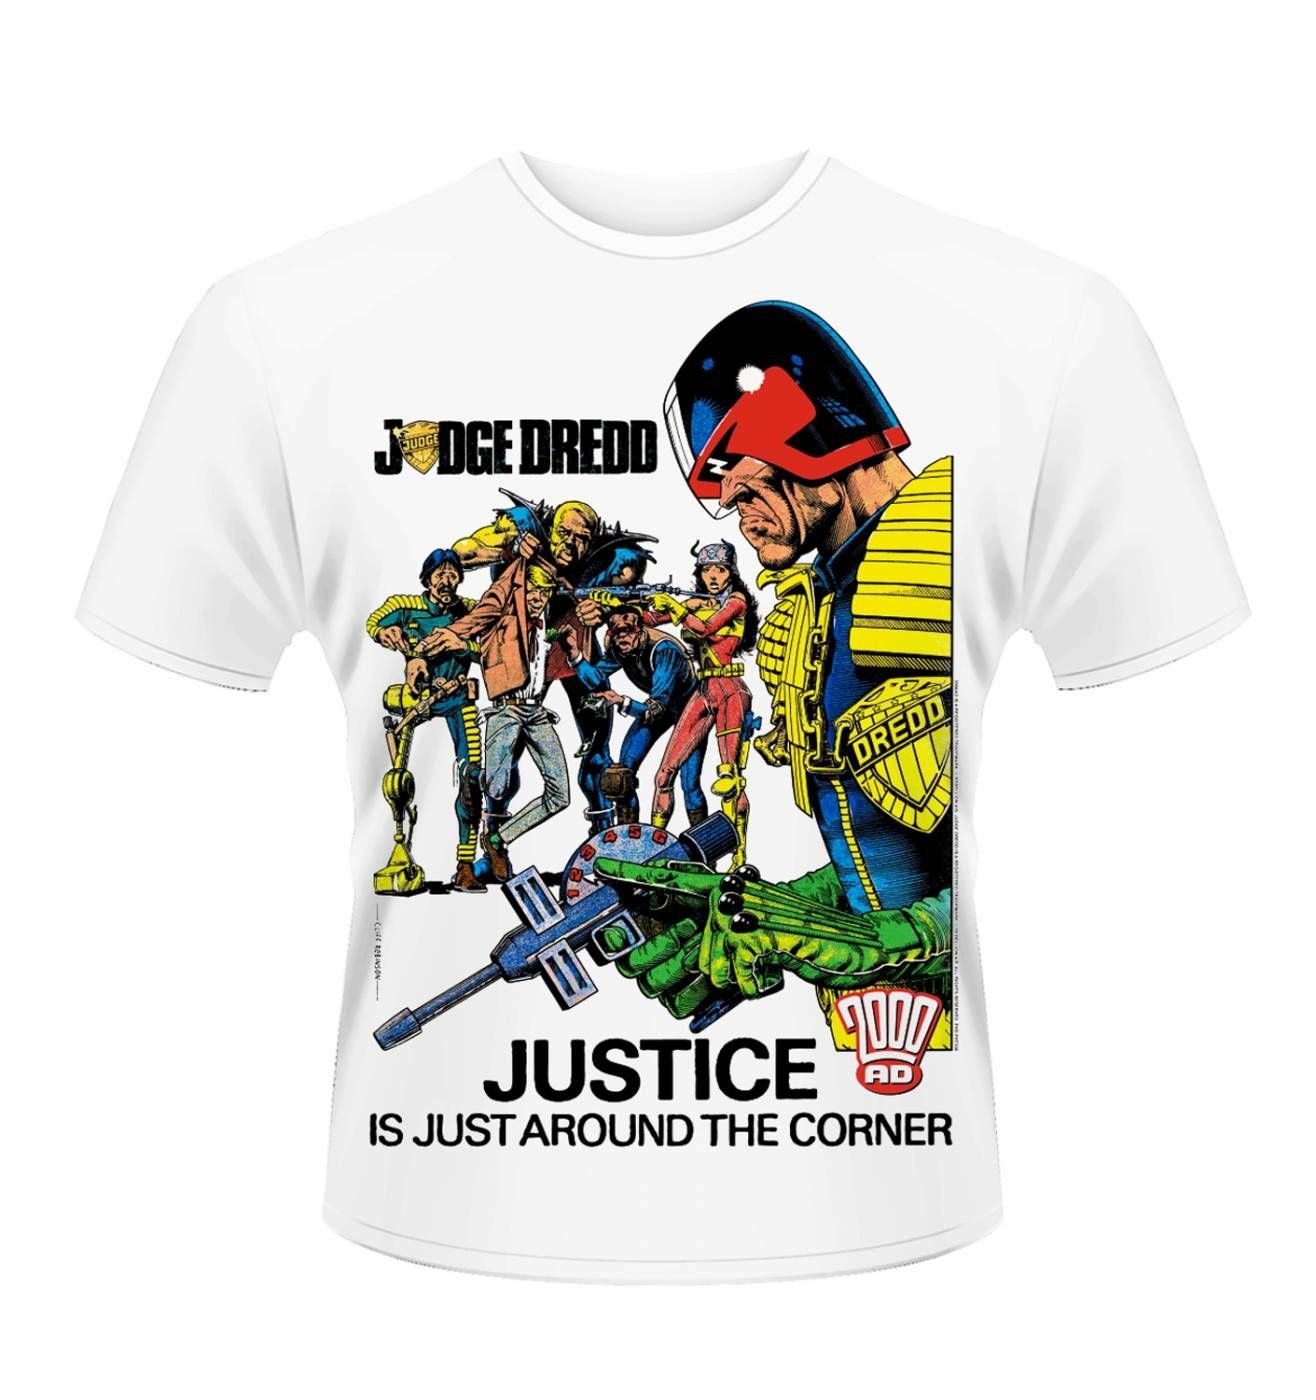 OFFICIAL Judge Dredd justice men's t-shirt